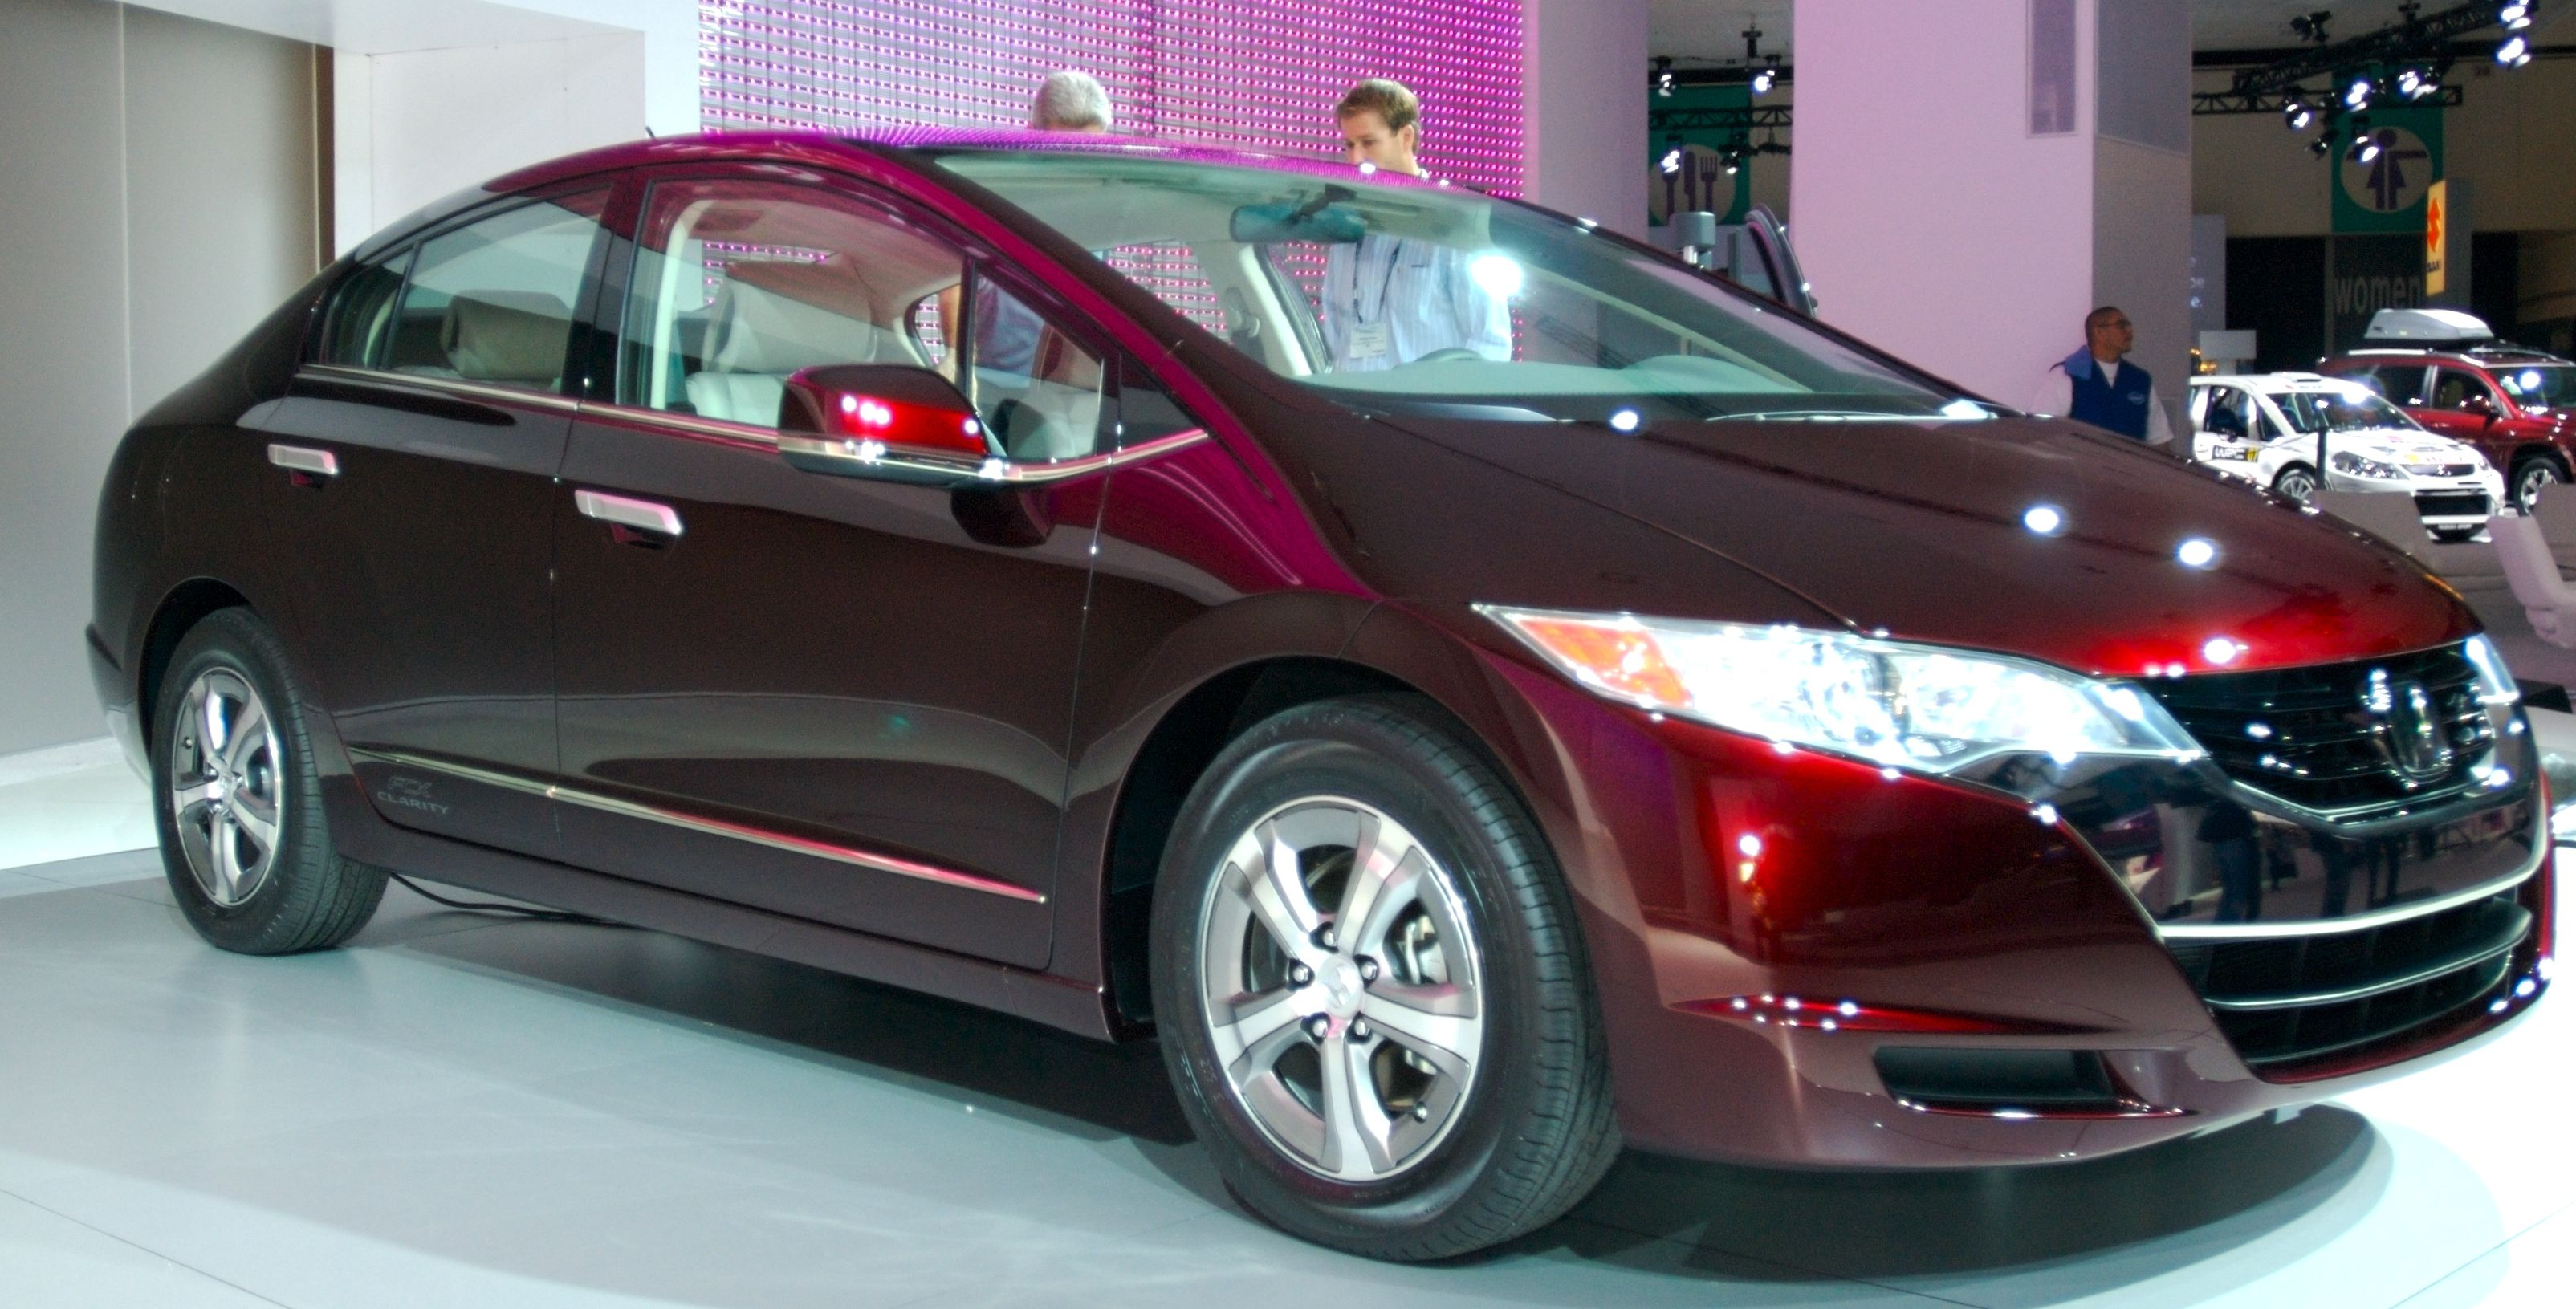 Honda FCX Clarity The Honda FCX Clarity fuel cell-electric vehicle ...